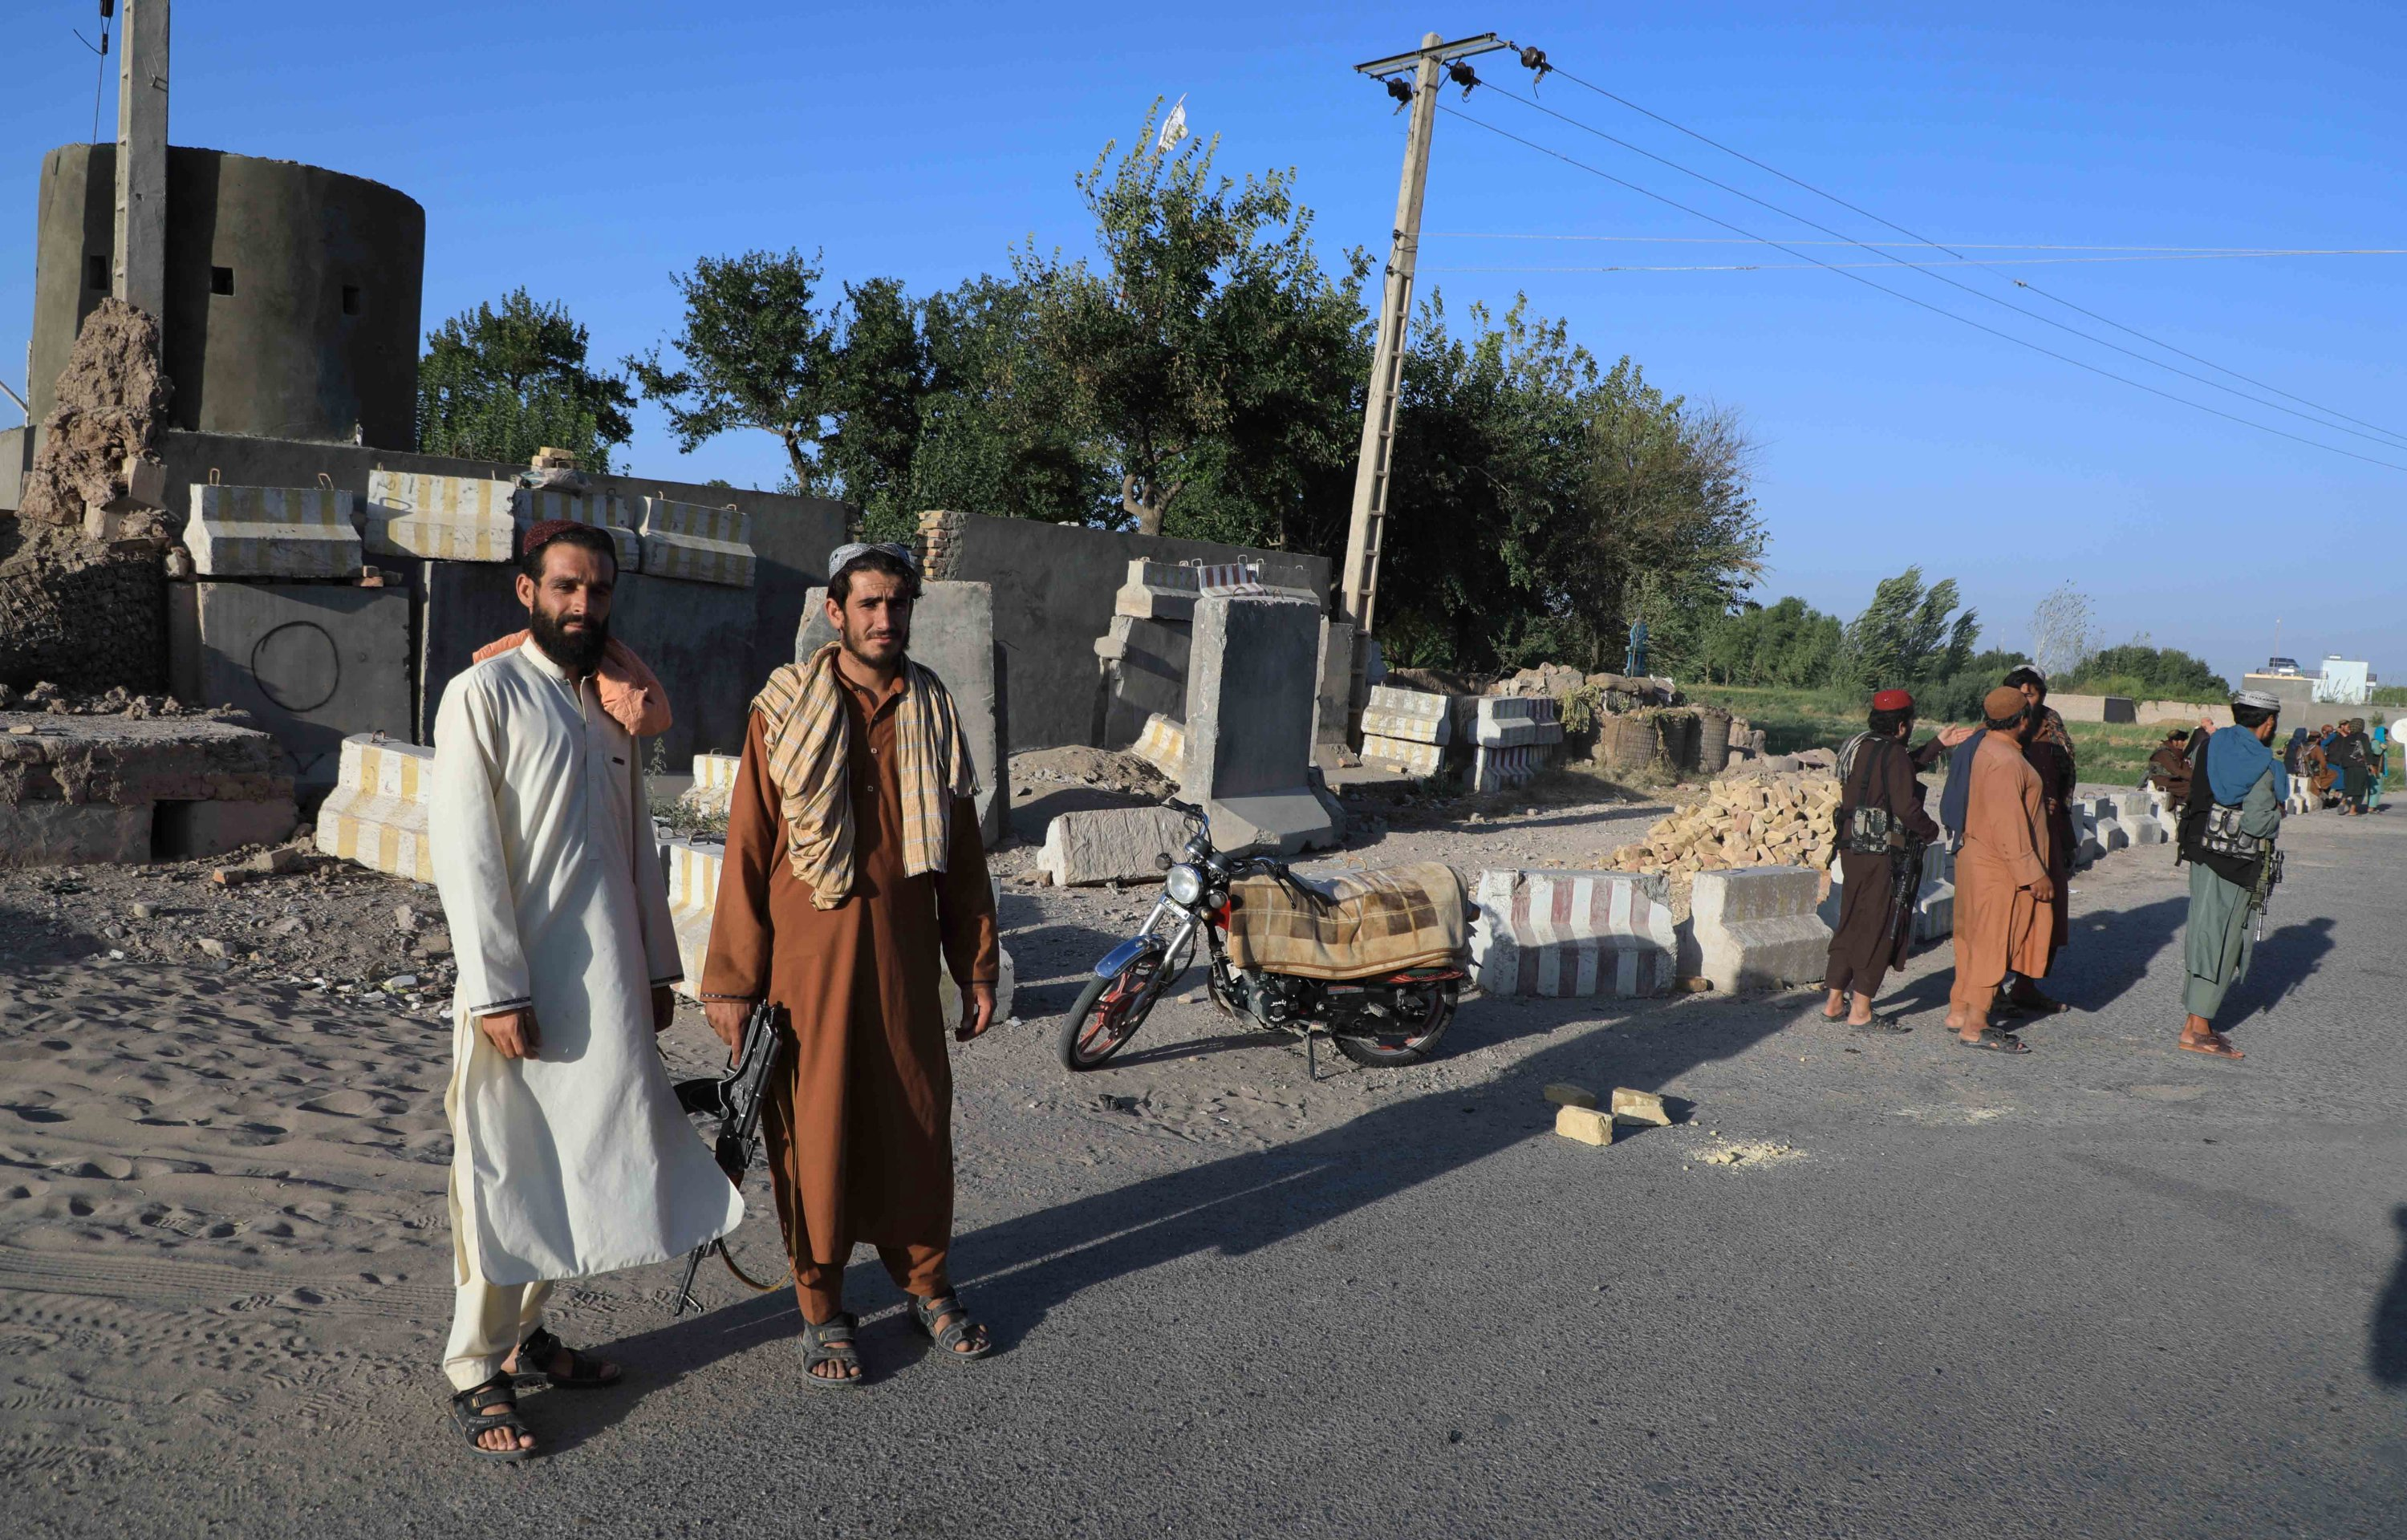 Taliban stand guard at a checkpoint as they took control of Herat, Afghanistan, Aug. 15, 2021. (EPA Photo)